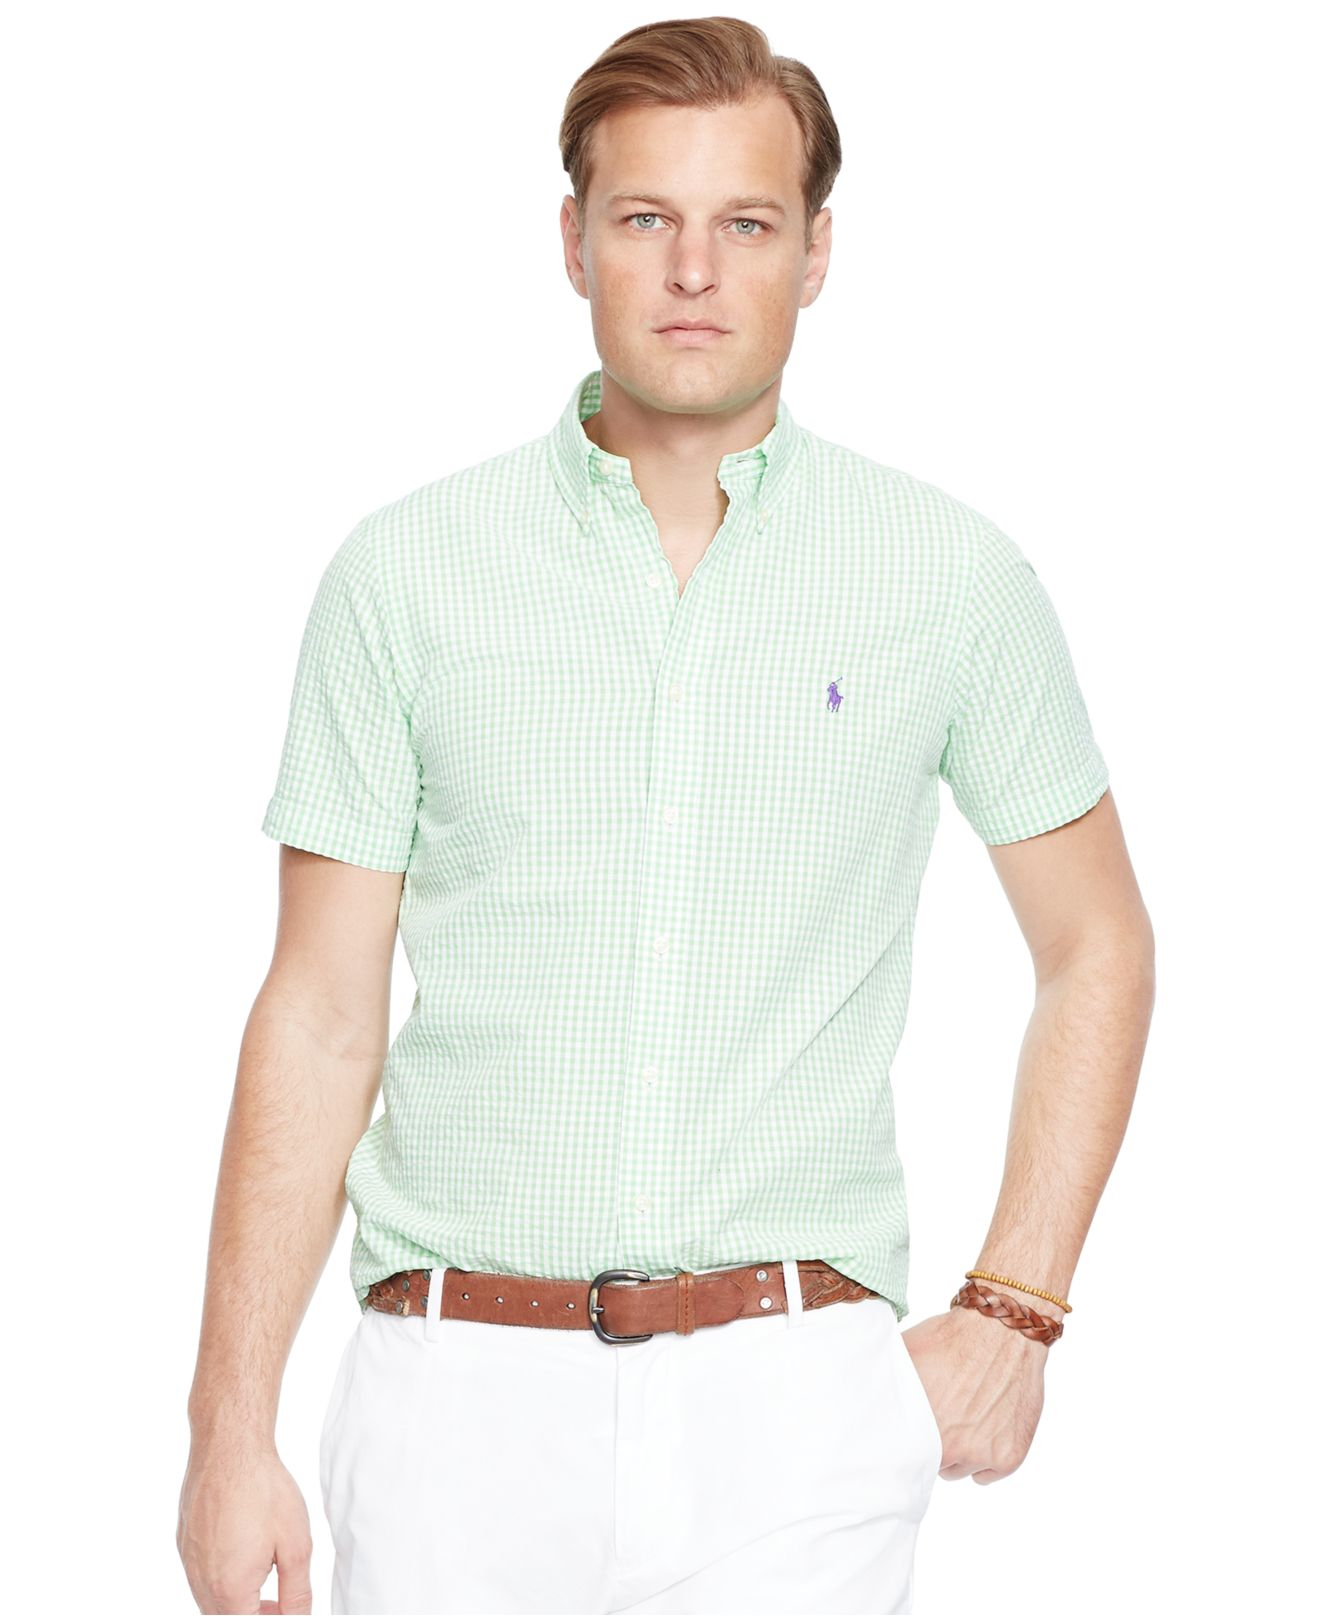 86fc3c2735f closeout macys coupon code ralph lauren tees for 7.90 33af7 e7167   authentic lyst polo ralph lauren big tall check seersucker shirt in green  883c1 b280e